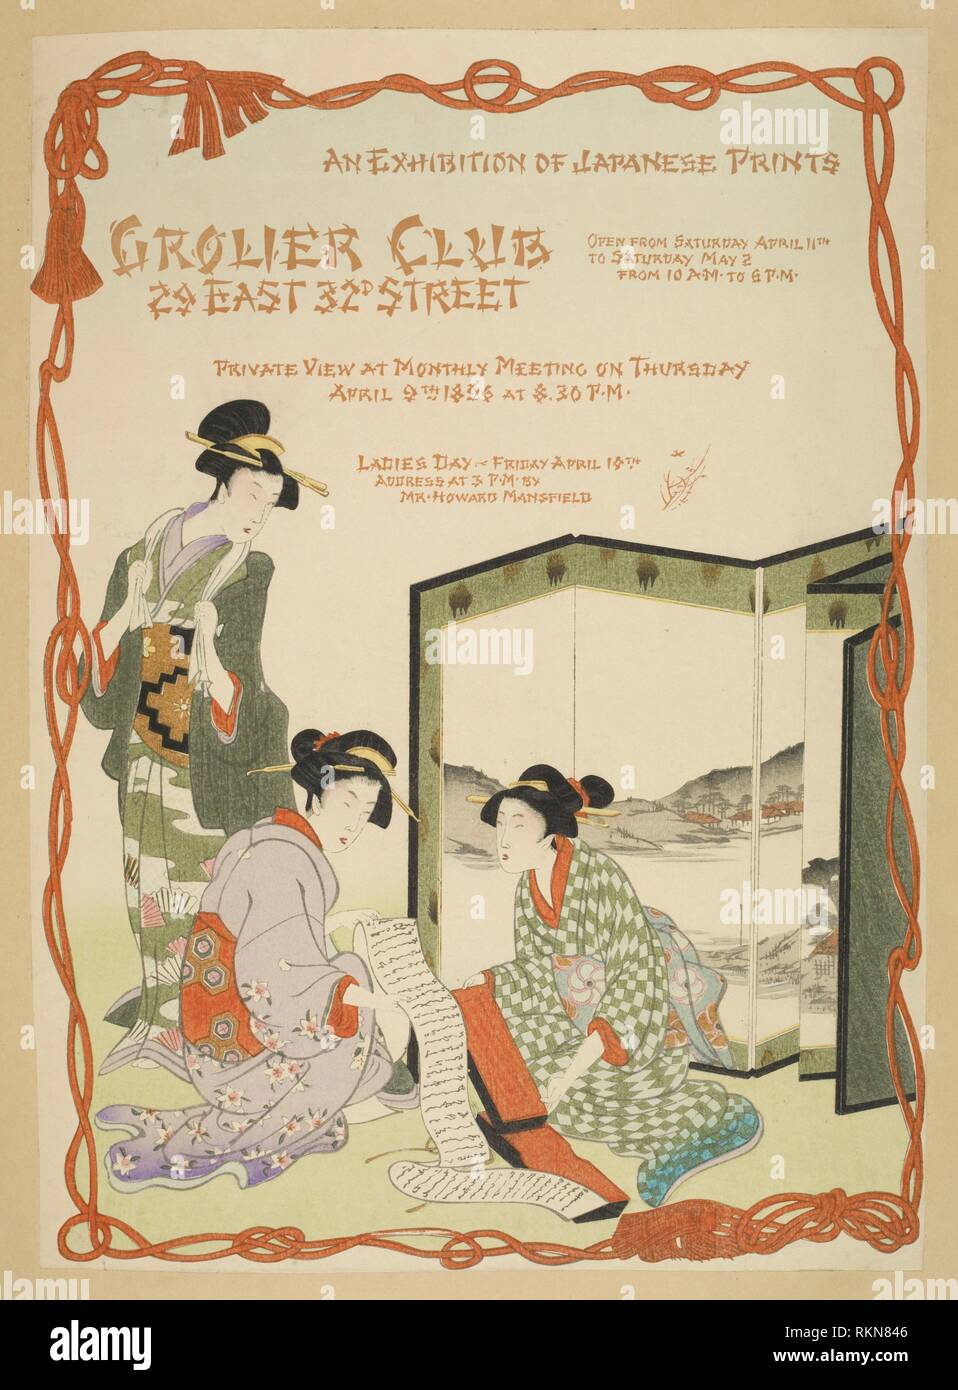 An exhibition of Japanese prints. Posters: exhibition, exposition, calendar. Date Issued: 1896. Posters, American. Posters. Mounted on card stock. Stock Photo